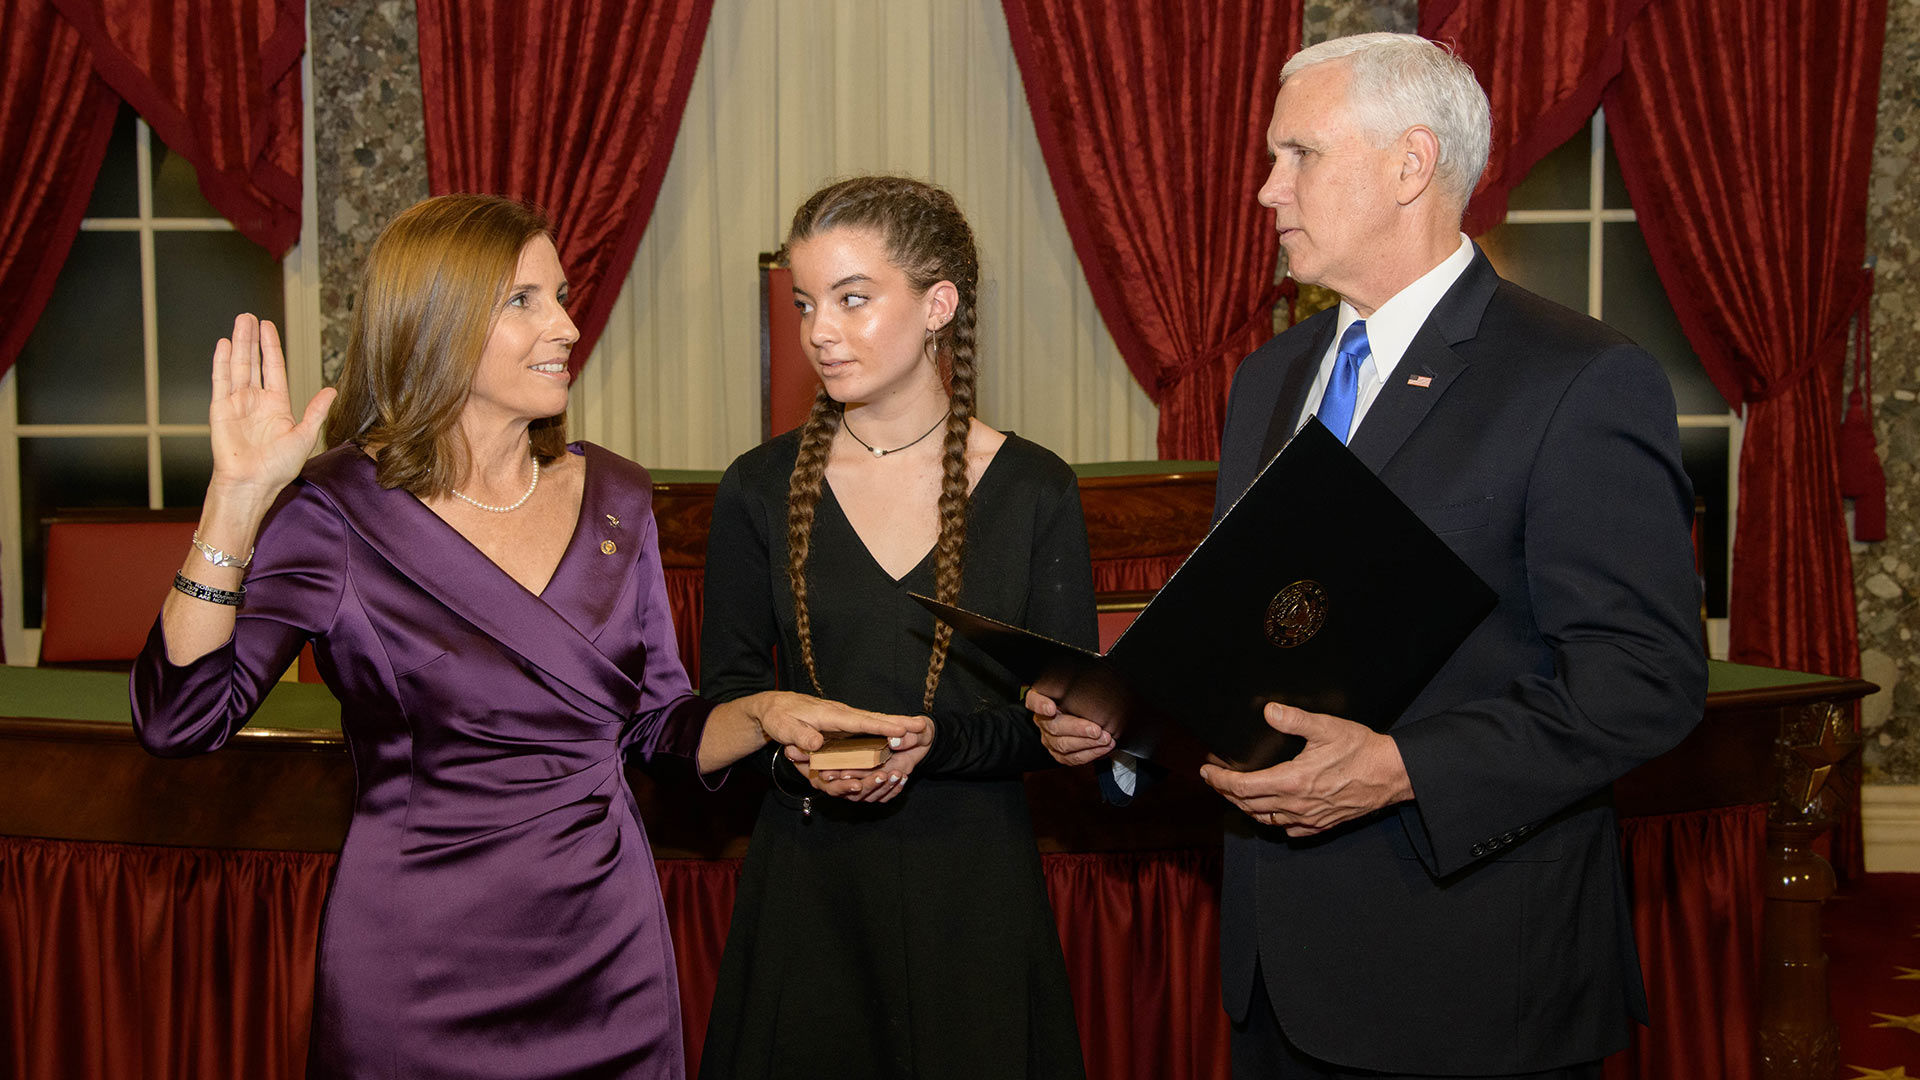 Sen. Martha McSally takes the oath of office for the U.S. Senate, January 4, 2019.  Vice President Mike Pence administered the oath while McSally's niece, Ella, held the bible.  McSally borrowed the bible for the University of Arizona Special Collections.  The copy of the New Testament was recovered from the body of an unknown sailor killed during the bombing of the U.S.S. Arizona in Pearl Harbor.